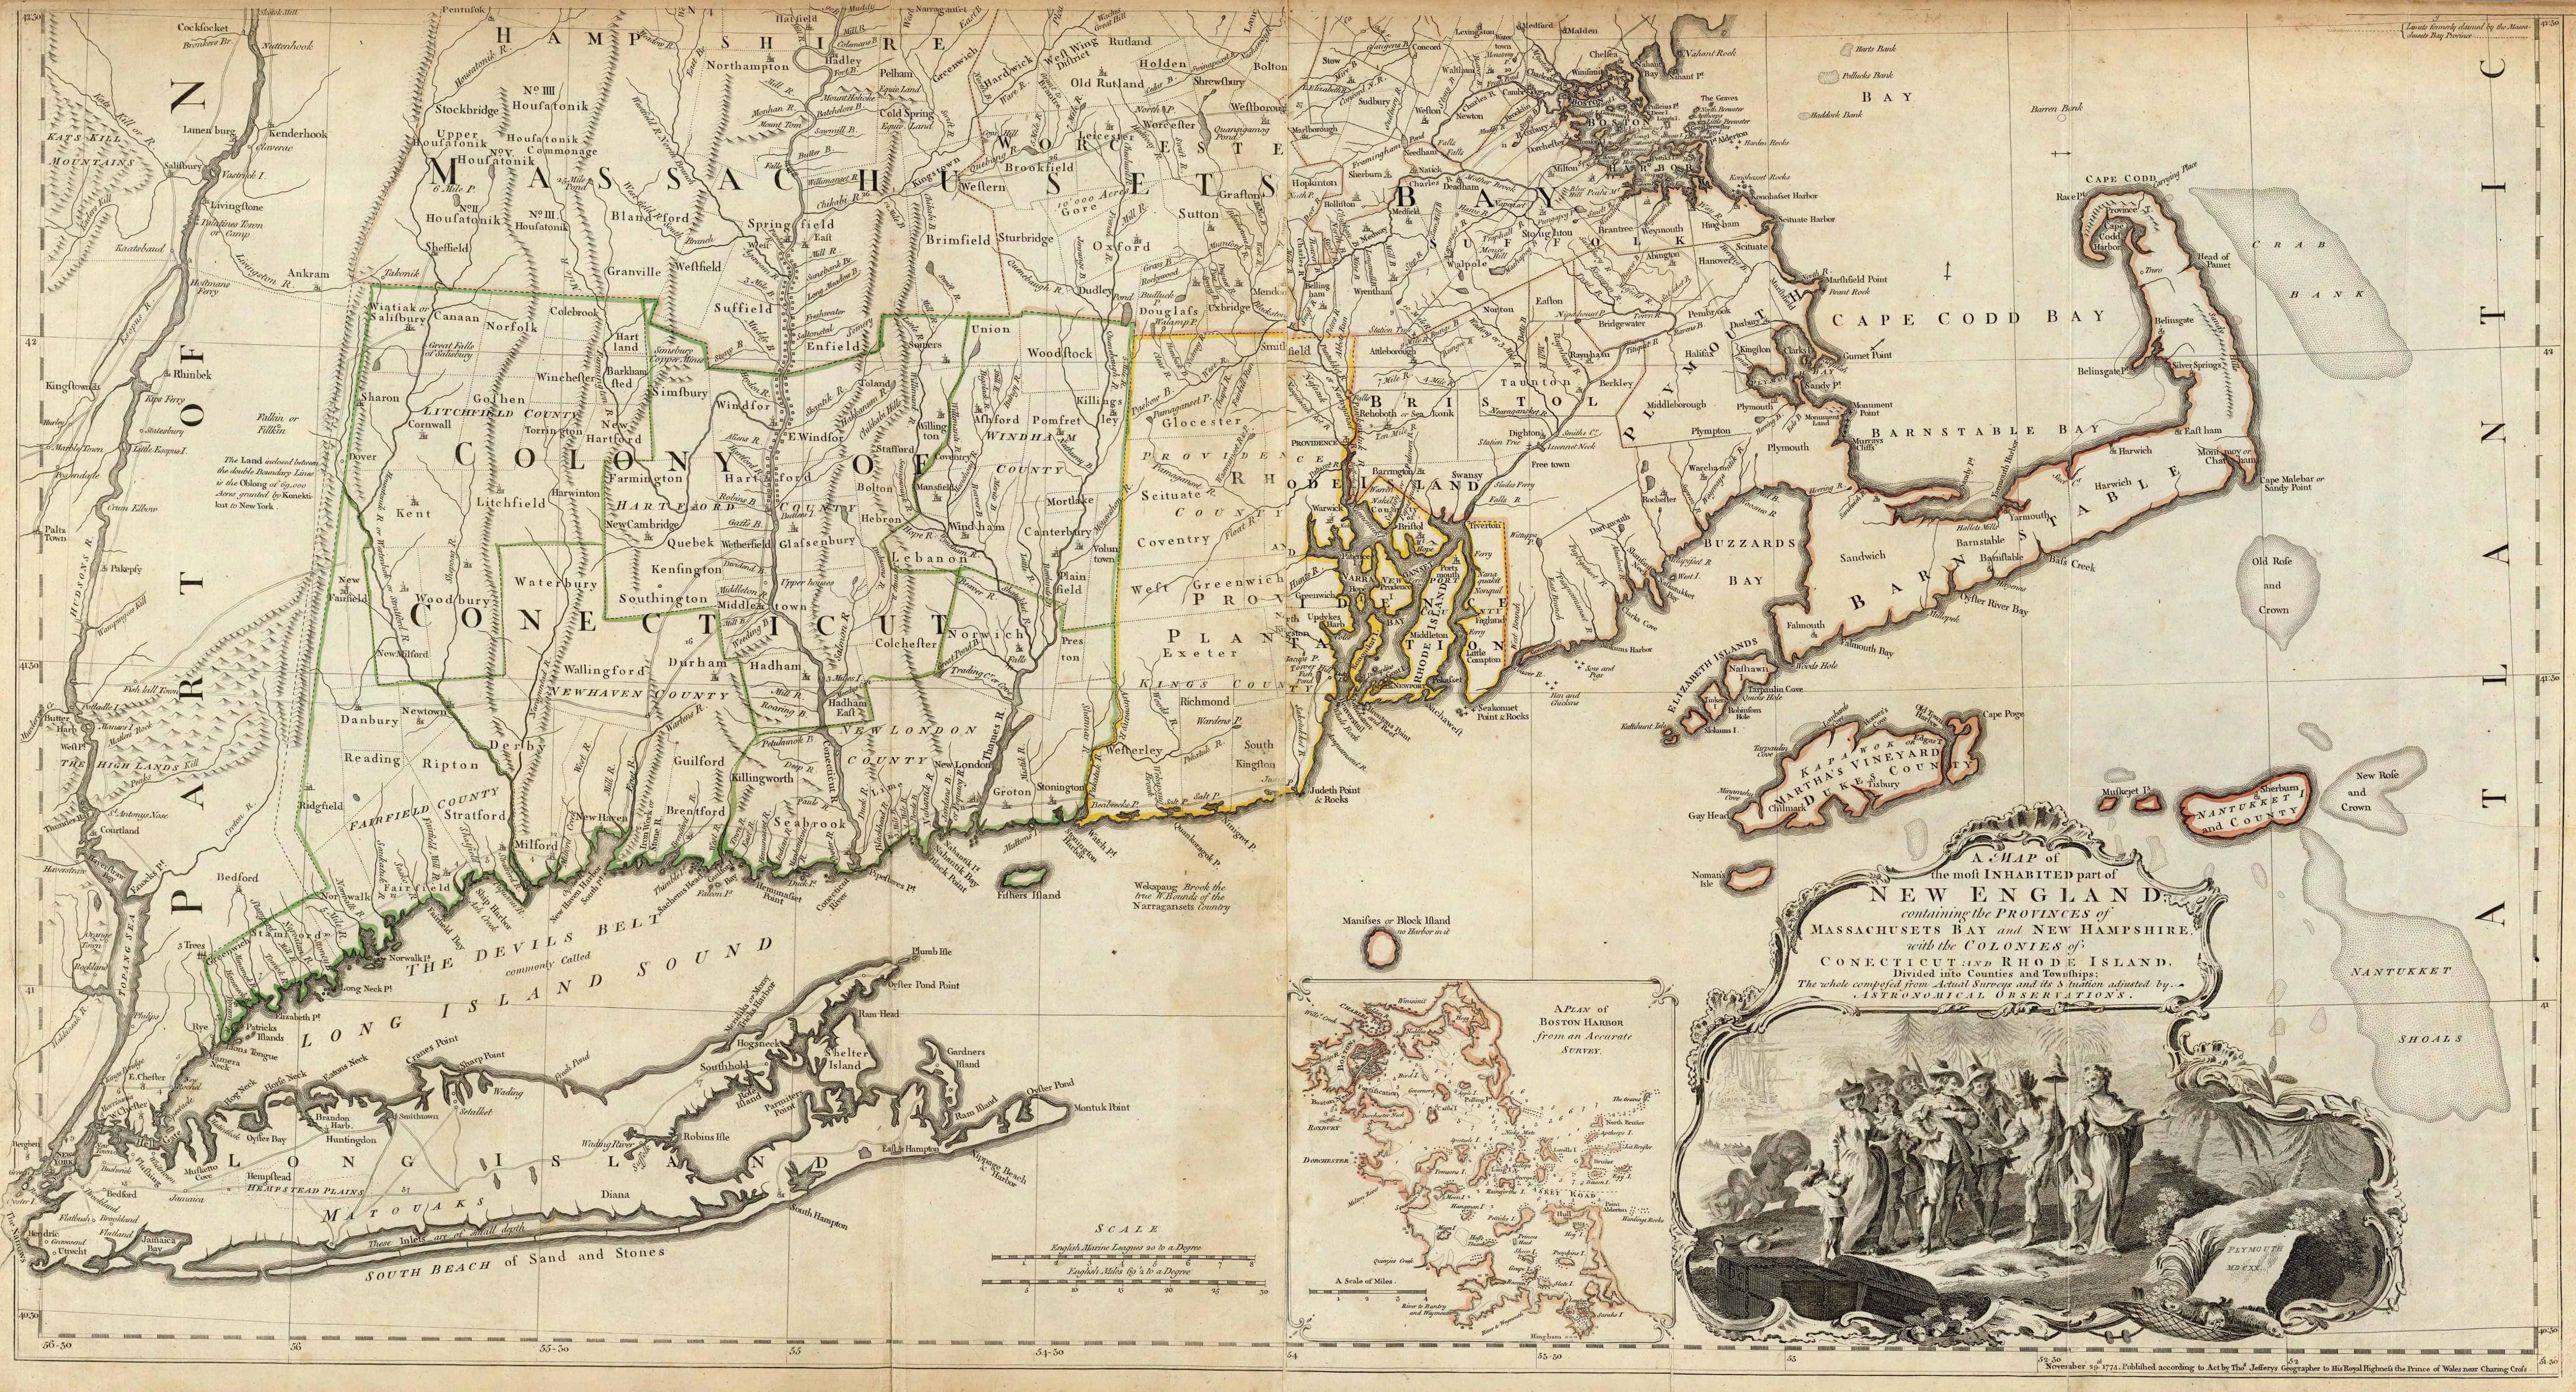 Old Historical City, County and State Maps of New Hampshire on